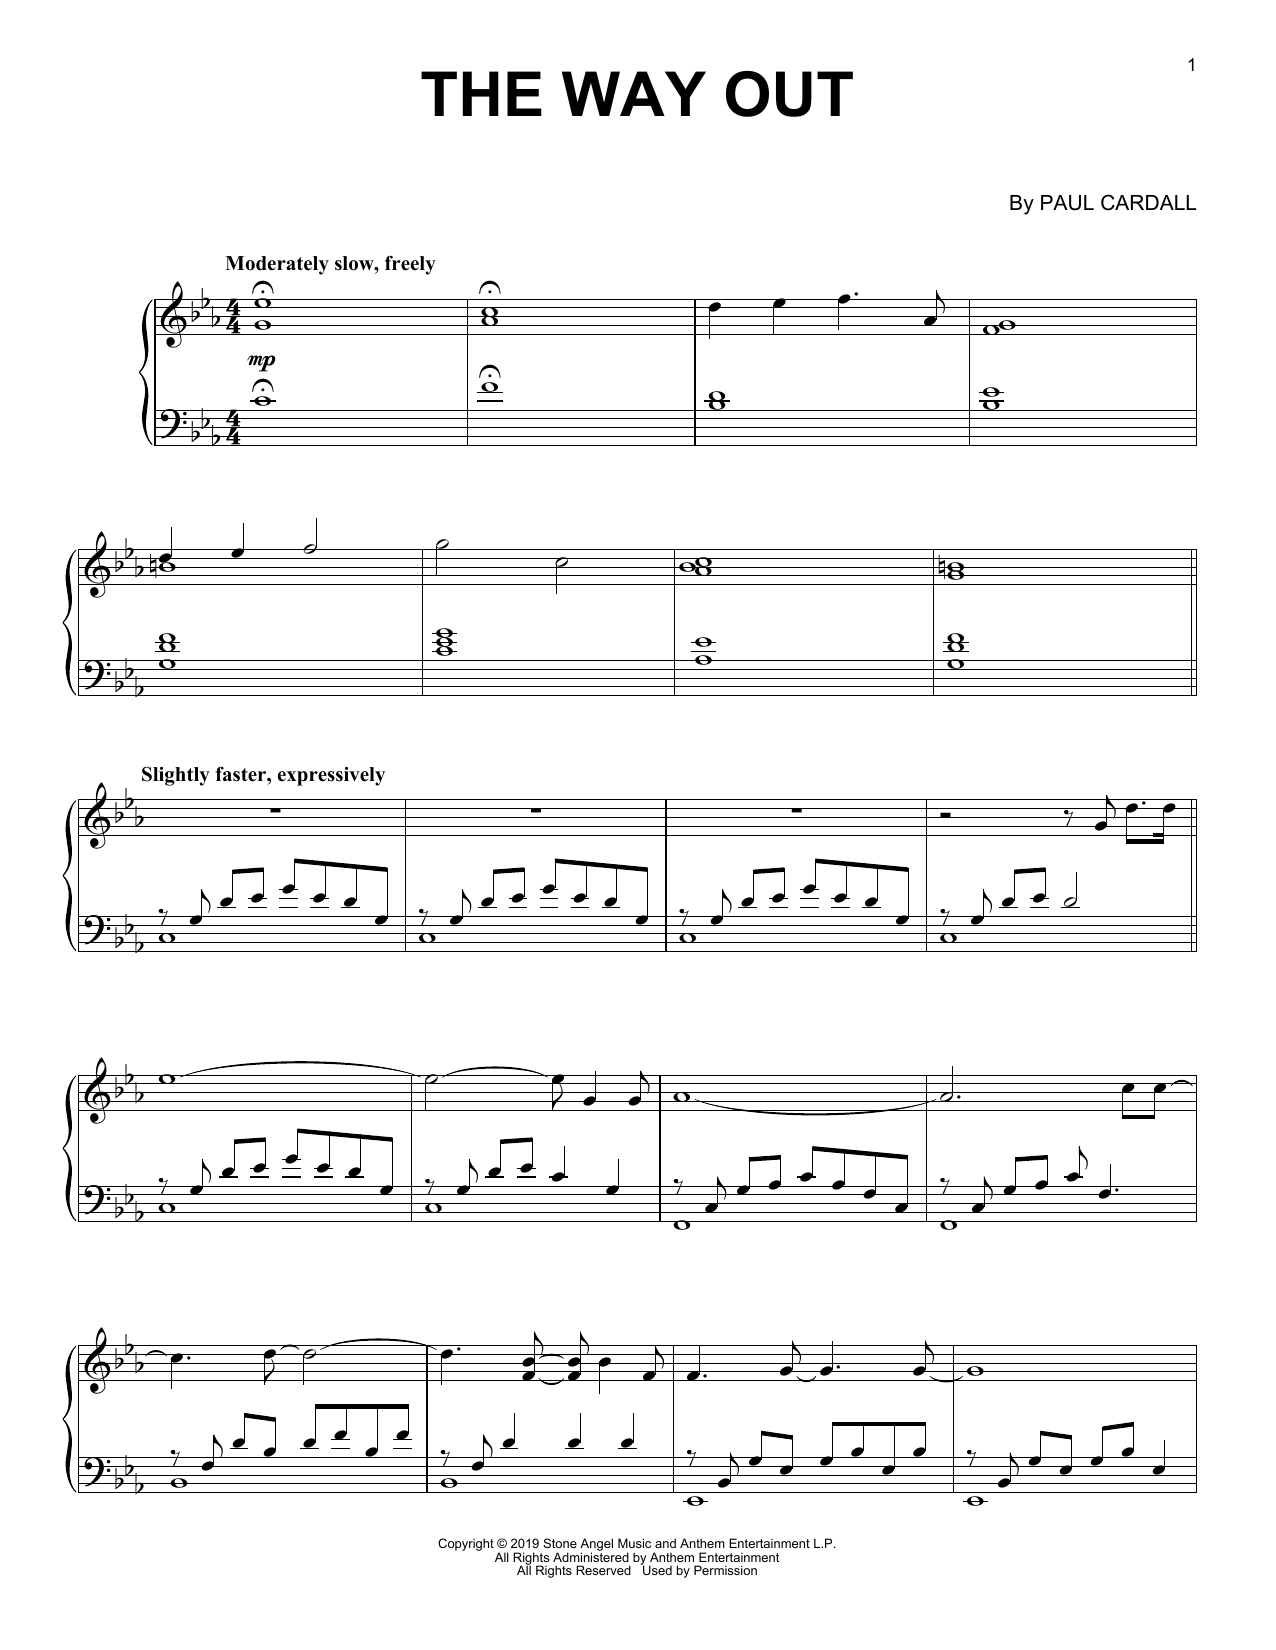 Paul Cardall The Way Out sheet music notes and chords. Download Printable PDF.